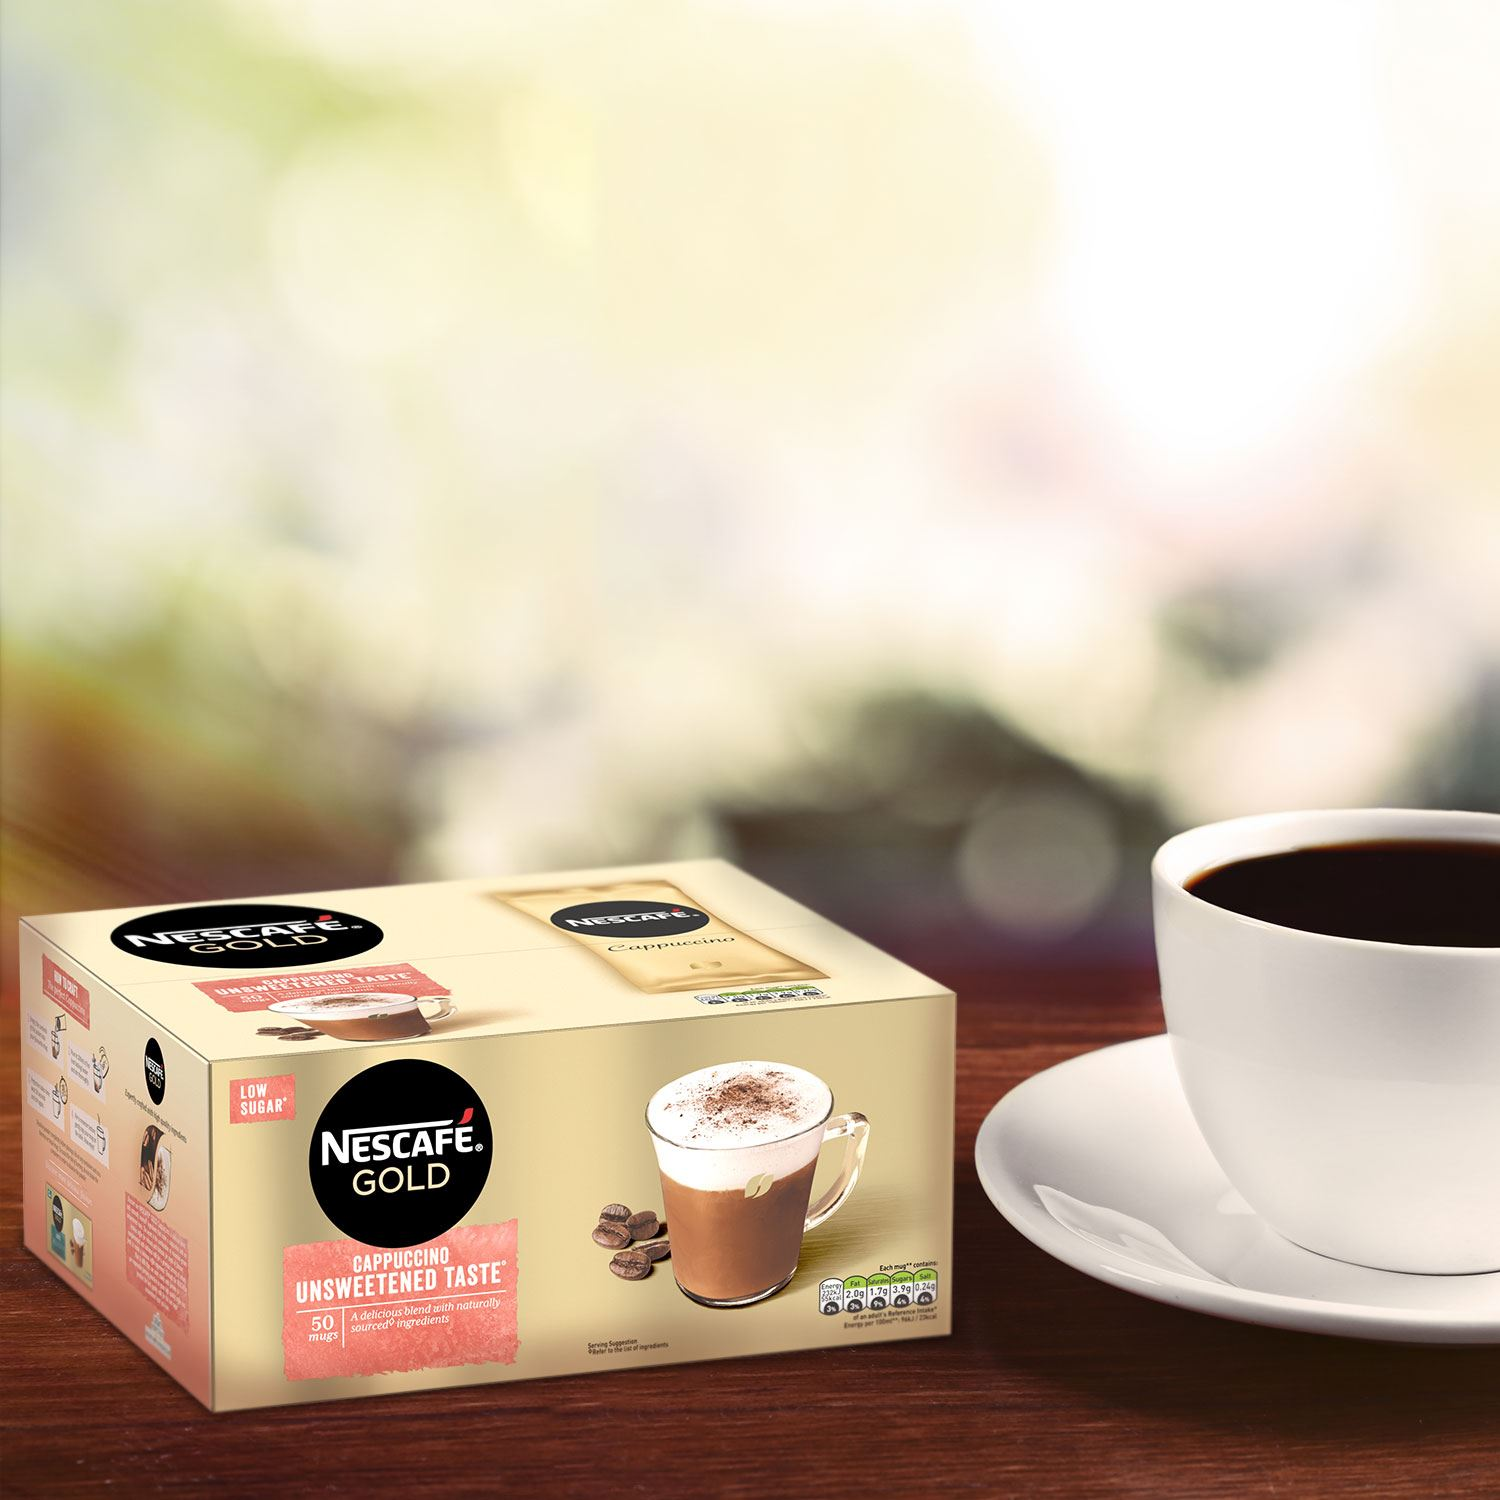 thumbnail 18 - Nescafe Gold Instant Coffee Sachets 40 Latte or 50 Unsweetened Cappuccino